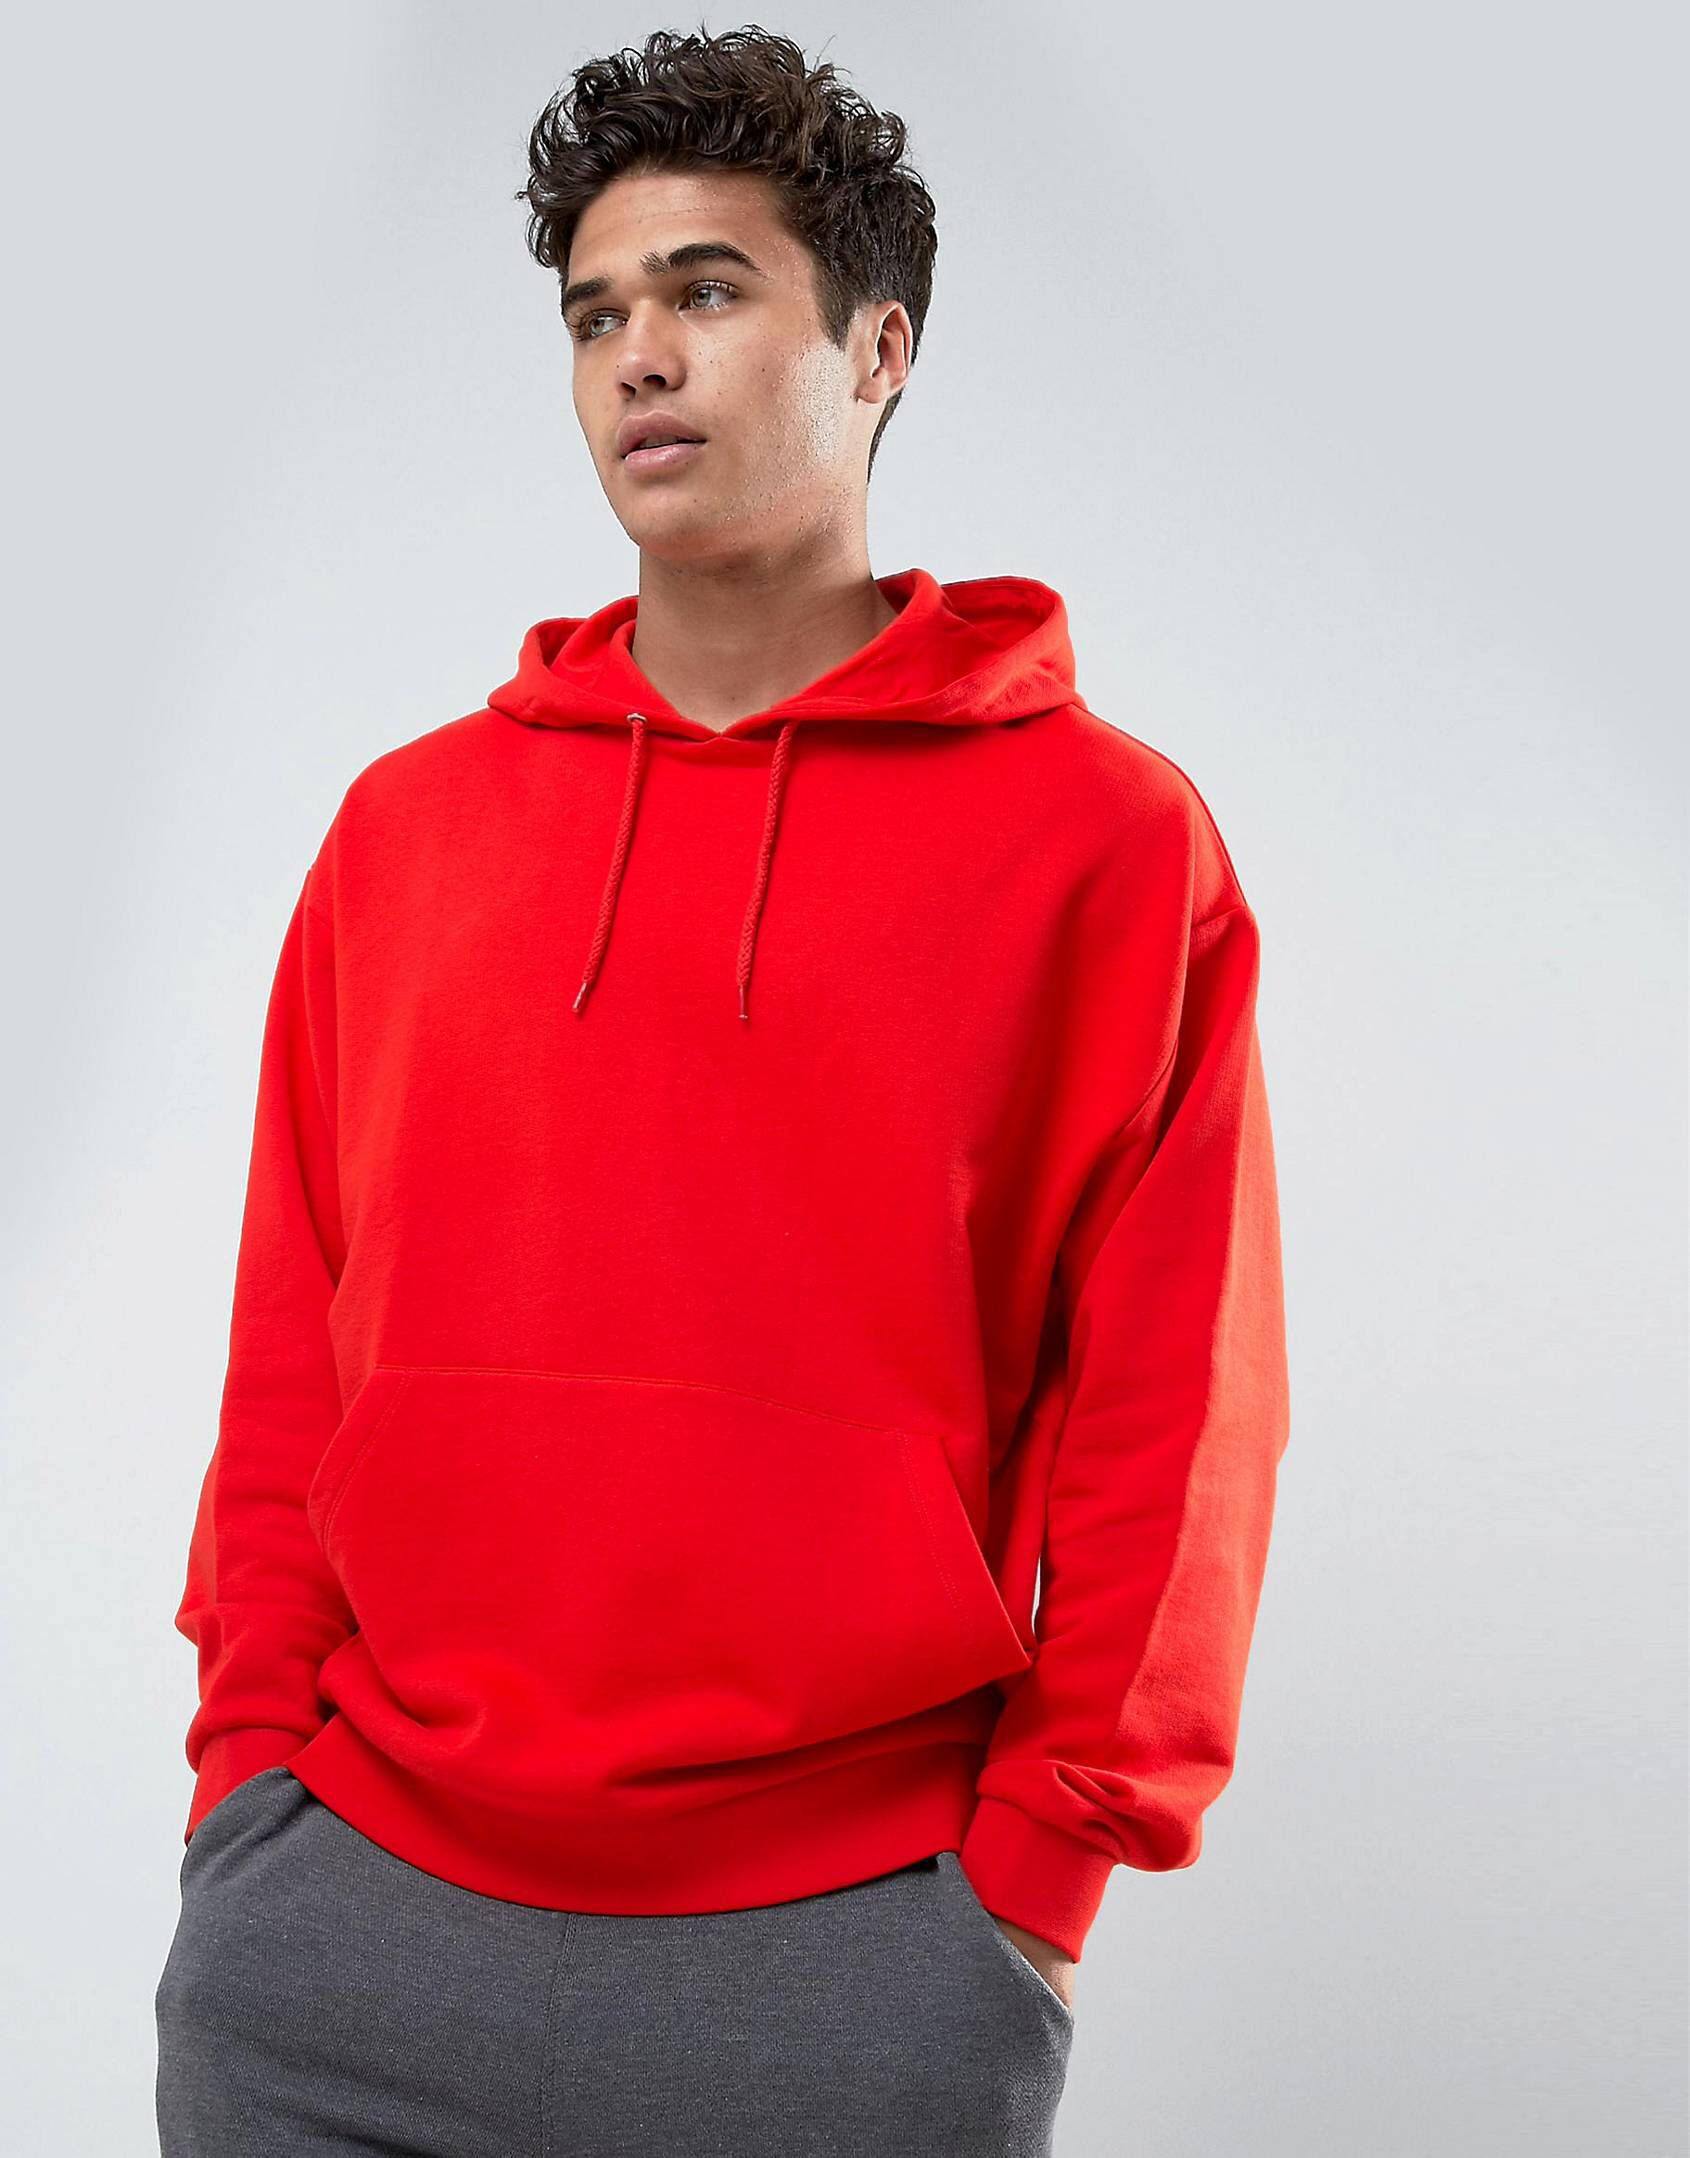 Oversized Hoodie In Red | Hoodies, Hooded sweatshirts, Mens